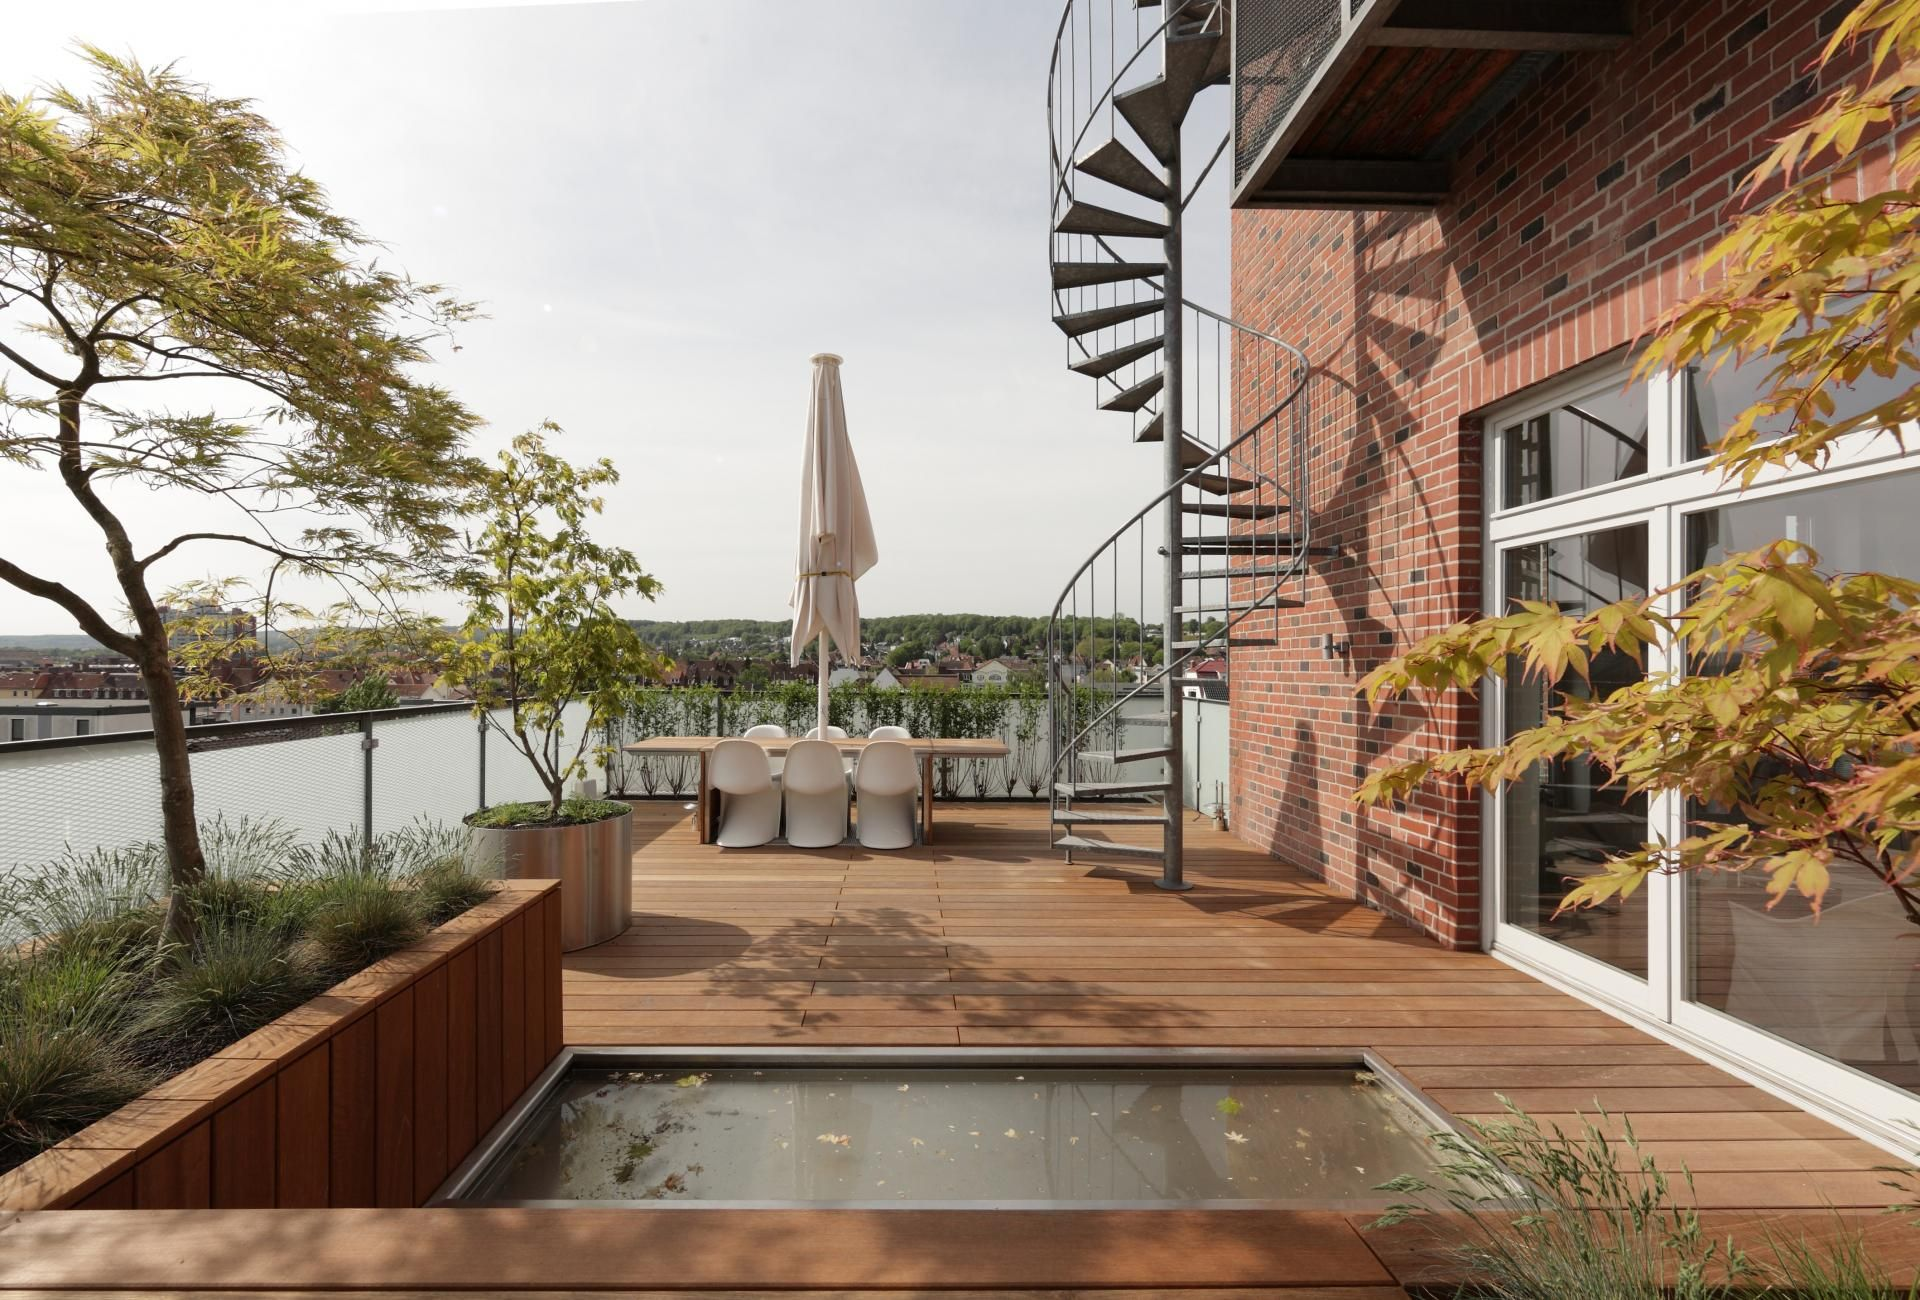 Penthouse Apartment in Bielefeld Outdoor spaces, Outdoor